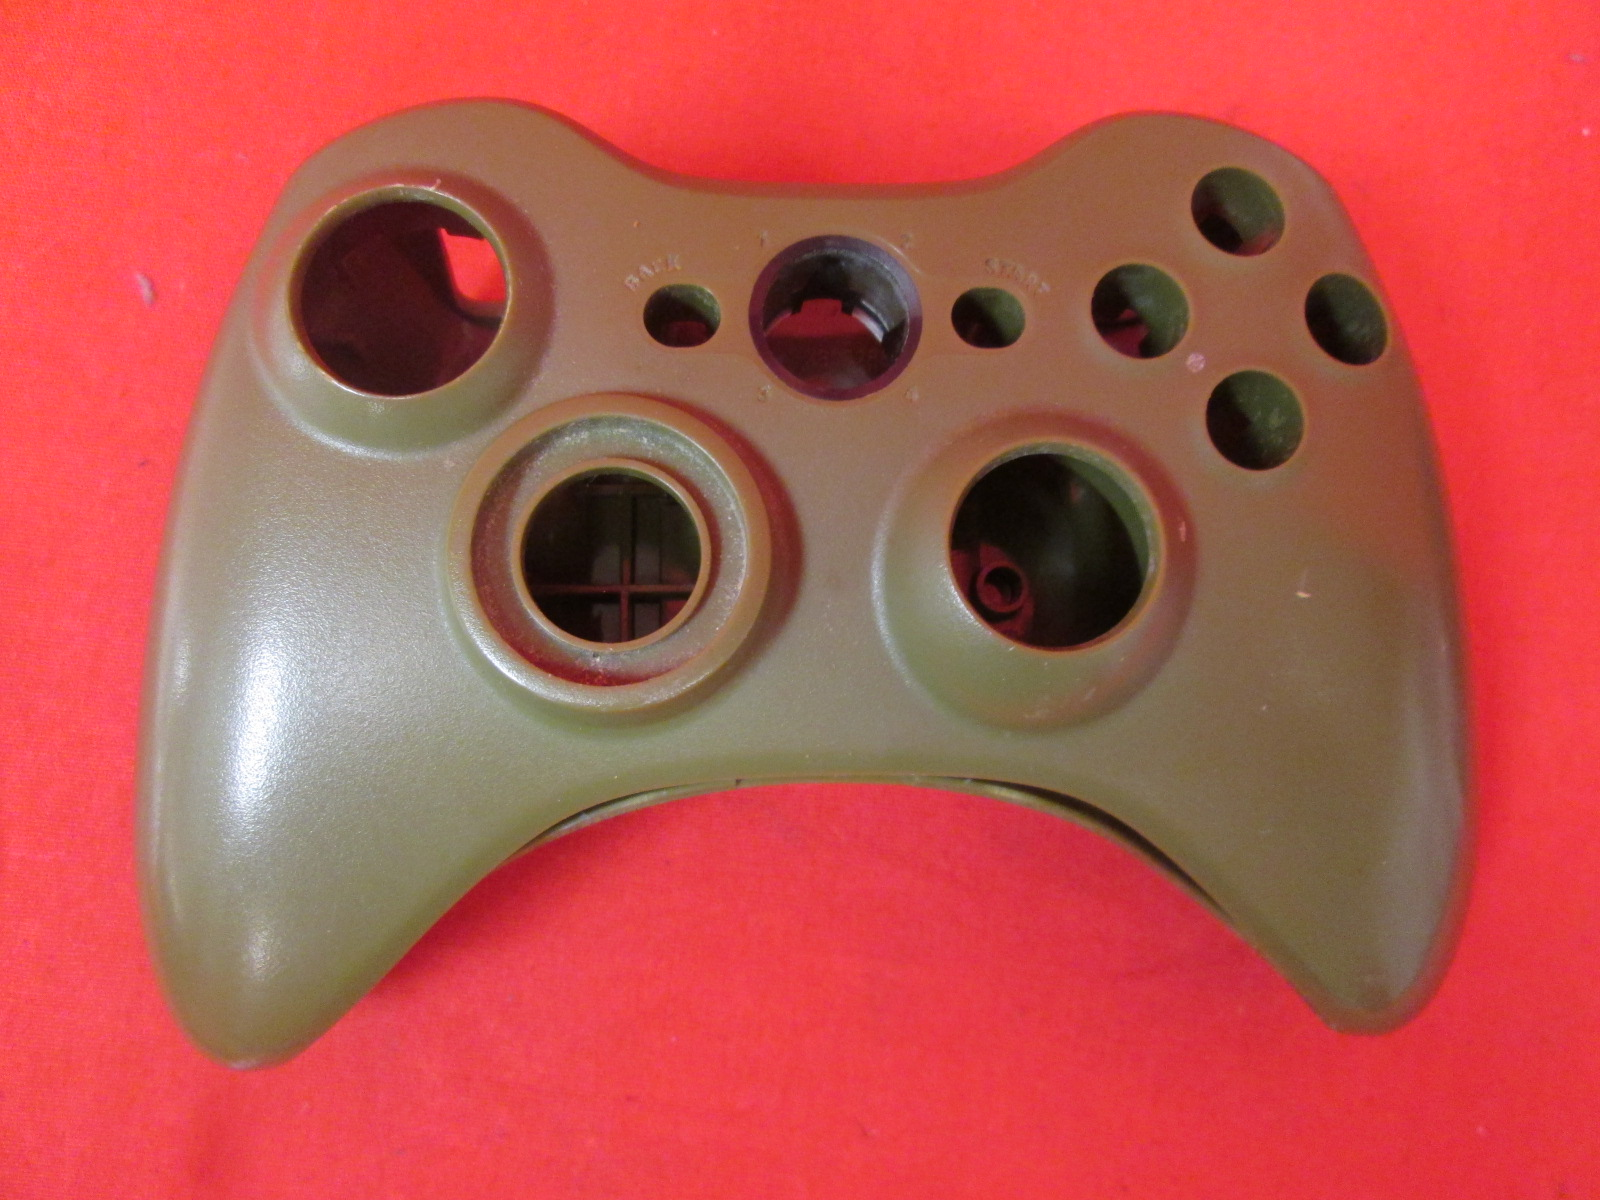 Replacement Micorosoft OEM Casing Housing Green For Xbox 360 wireless